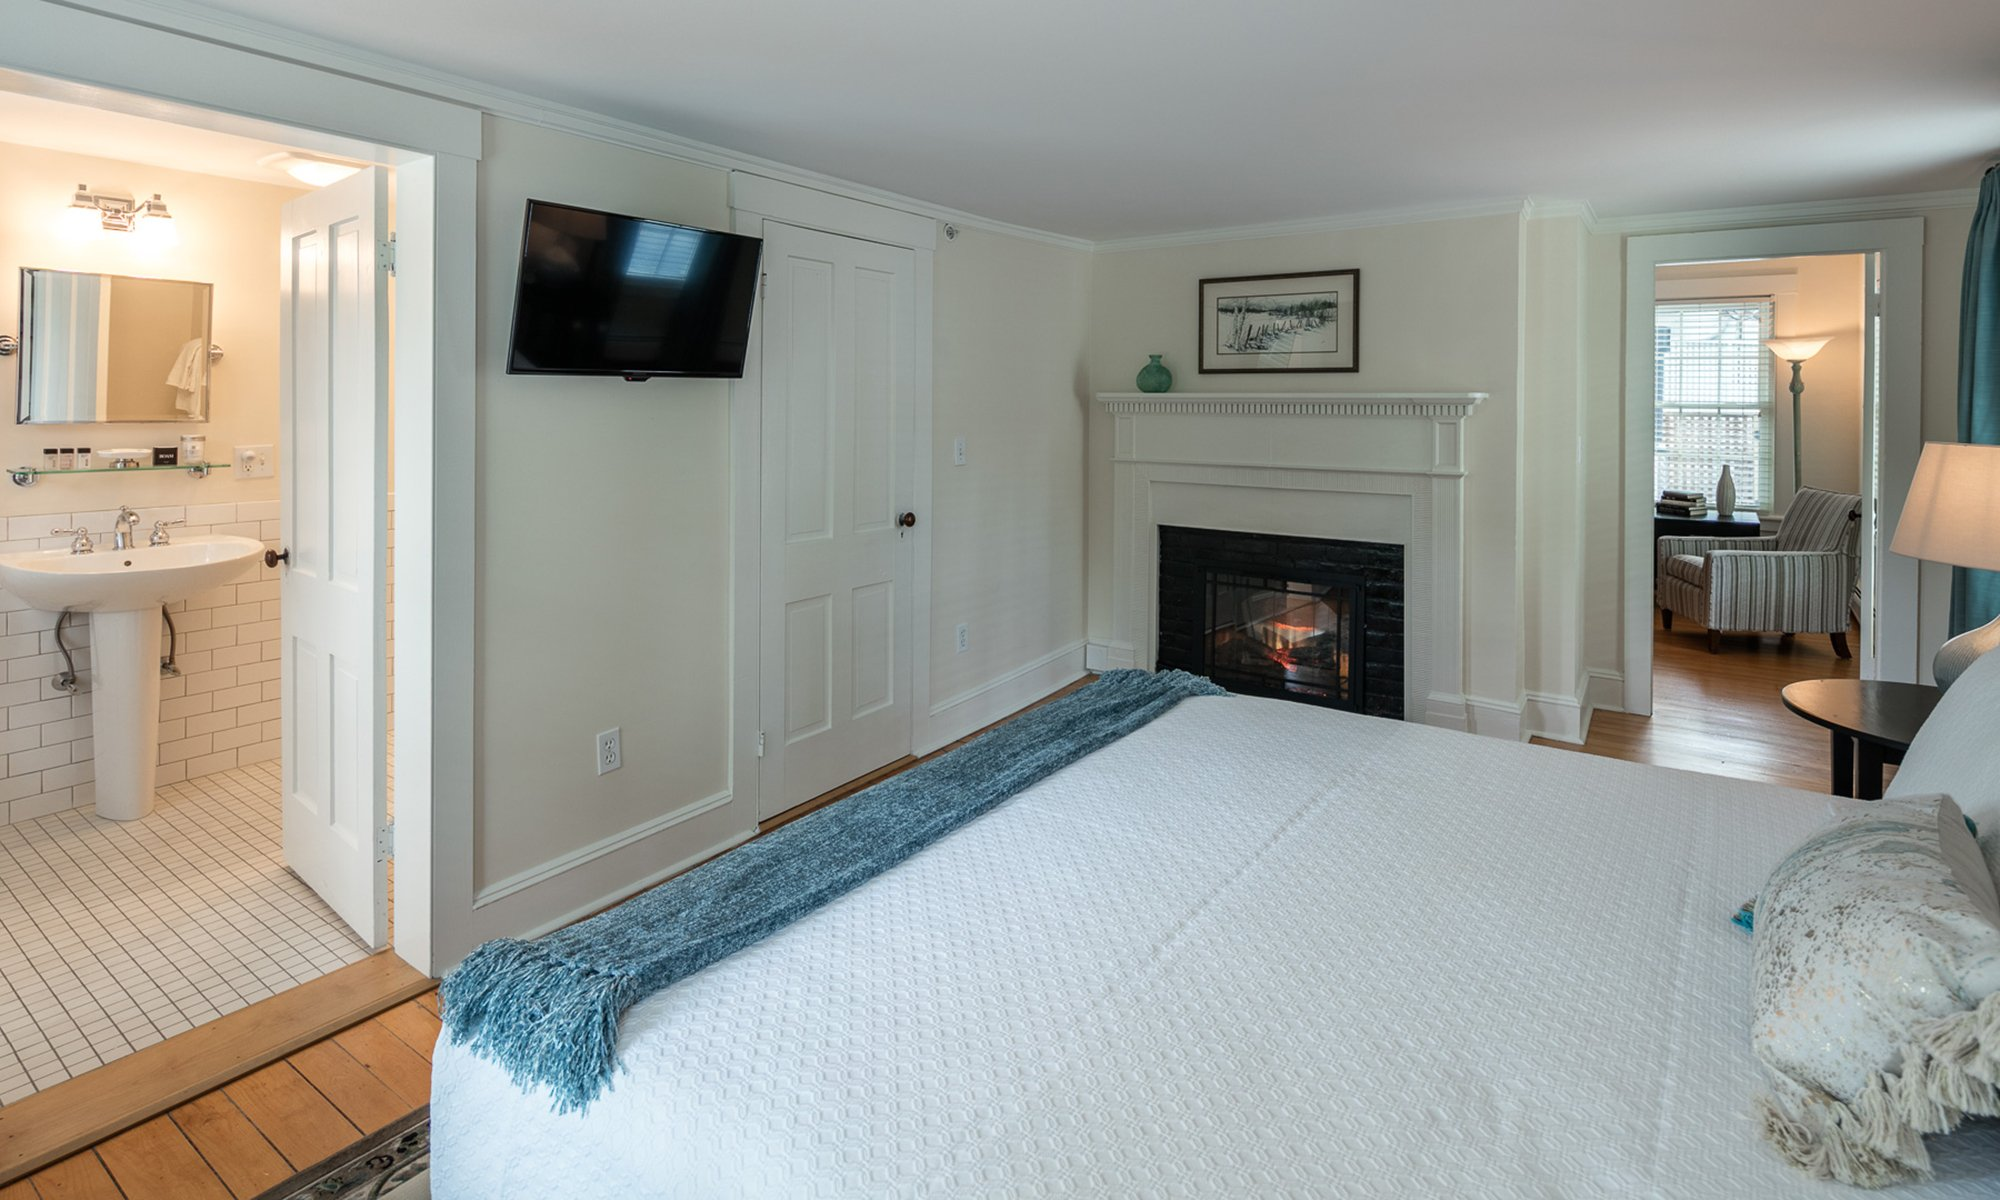 Suites - Woodstock, Vermont Bed and Breakfast | Blue Horse Inn